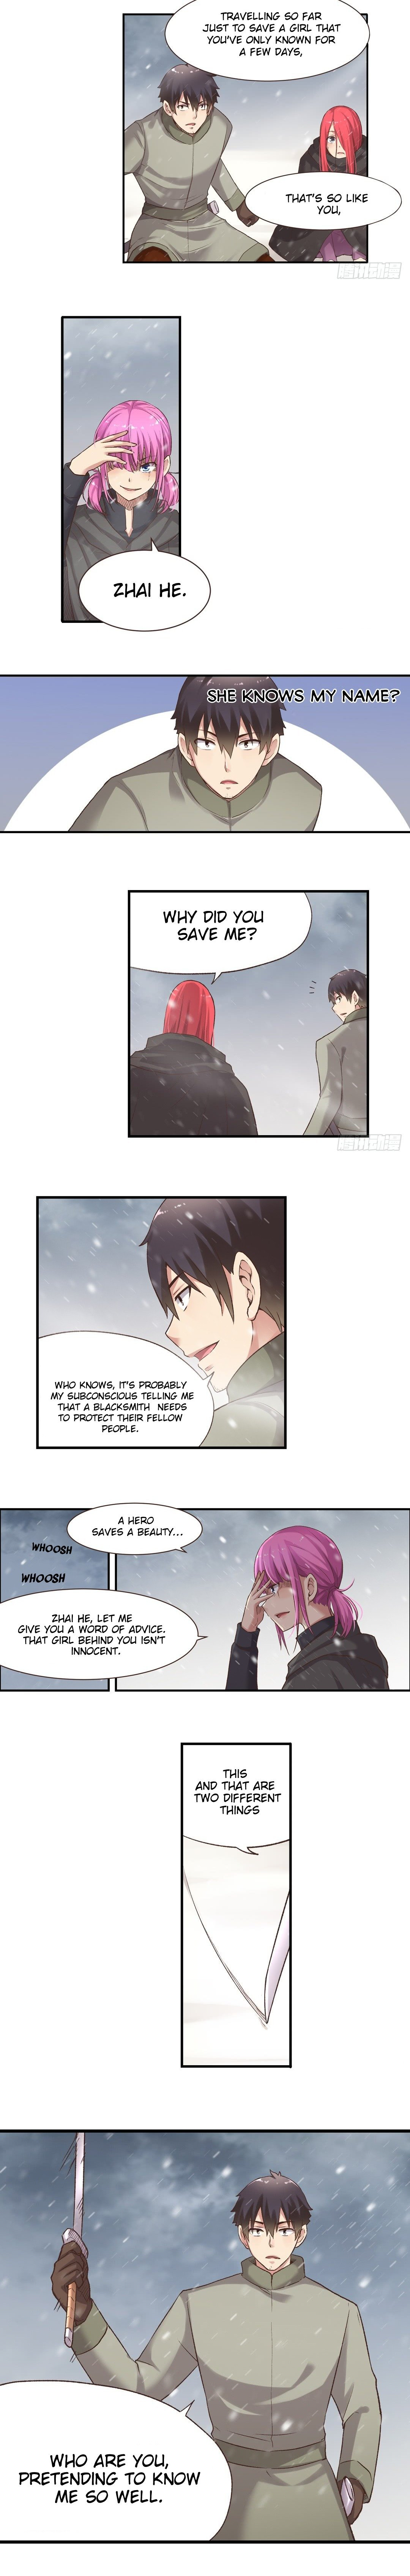 Manga Because I'm An Uncle who Runs A Weapon Shop - Chapter 64 Page 3